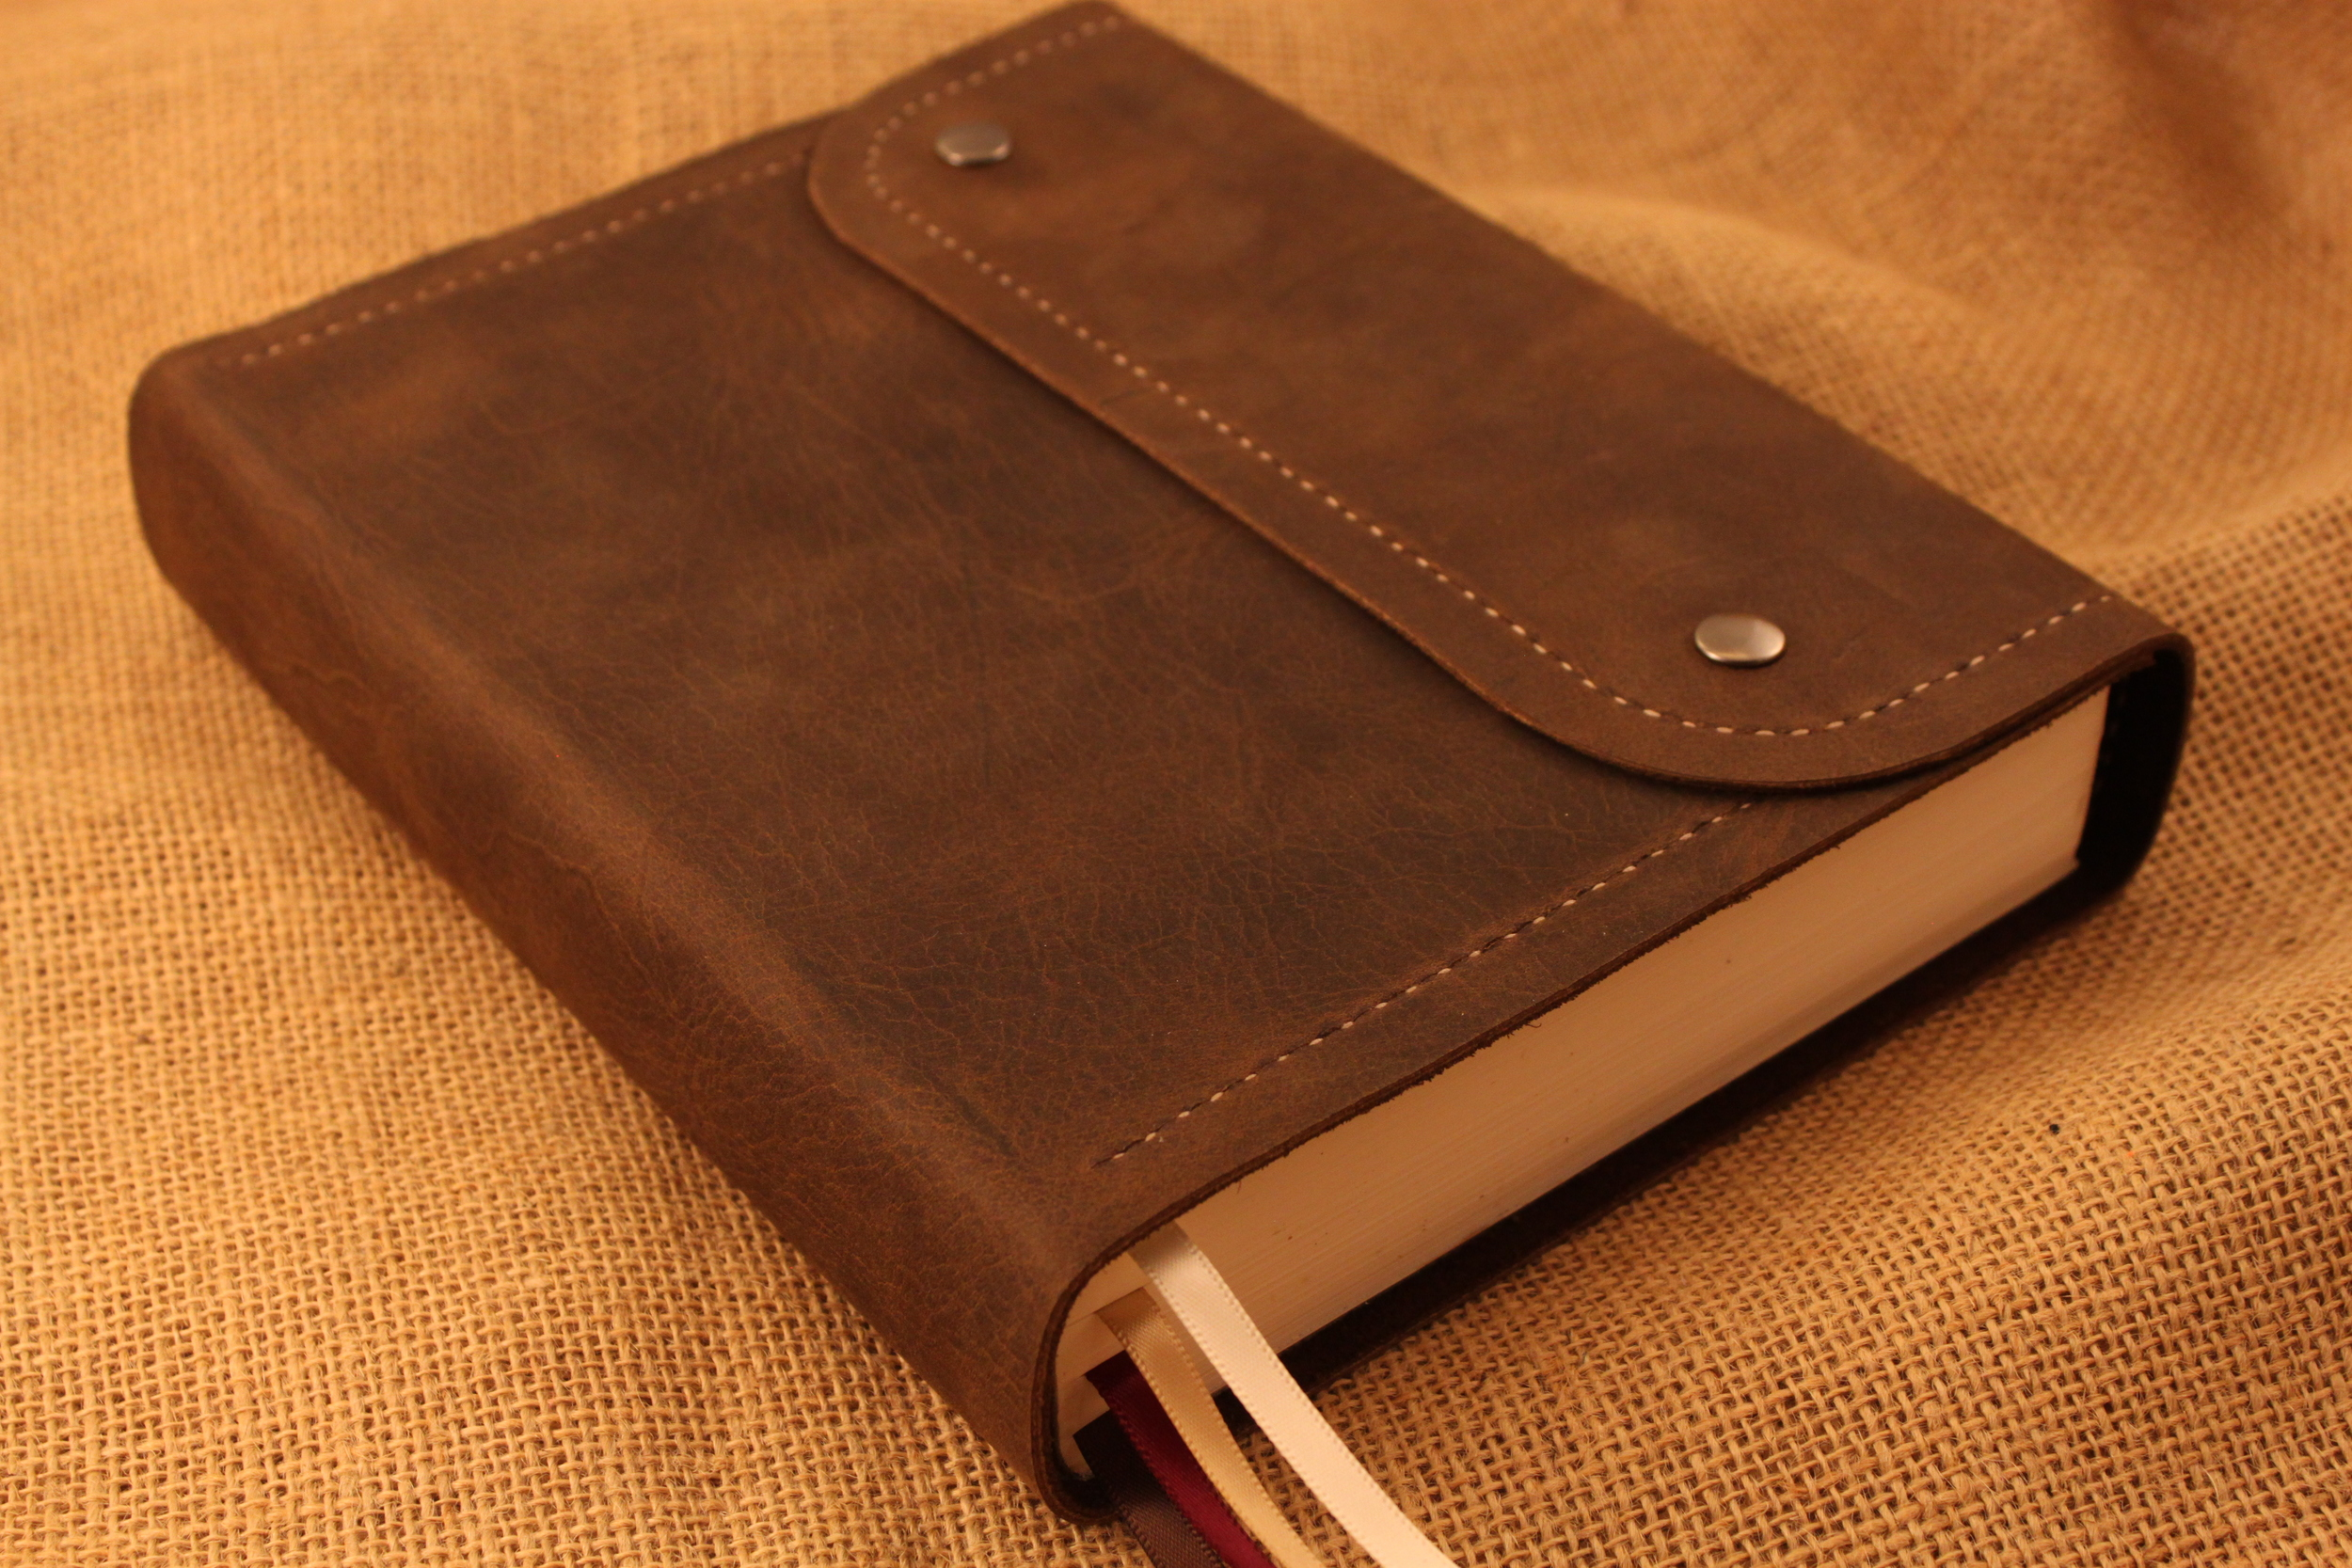 Nelson NKJV Wide Margin Bible in Distressed Brown Leather